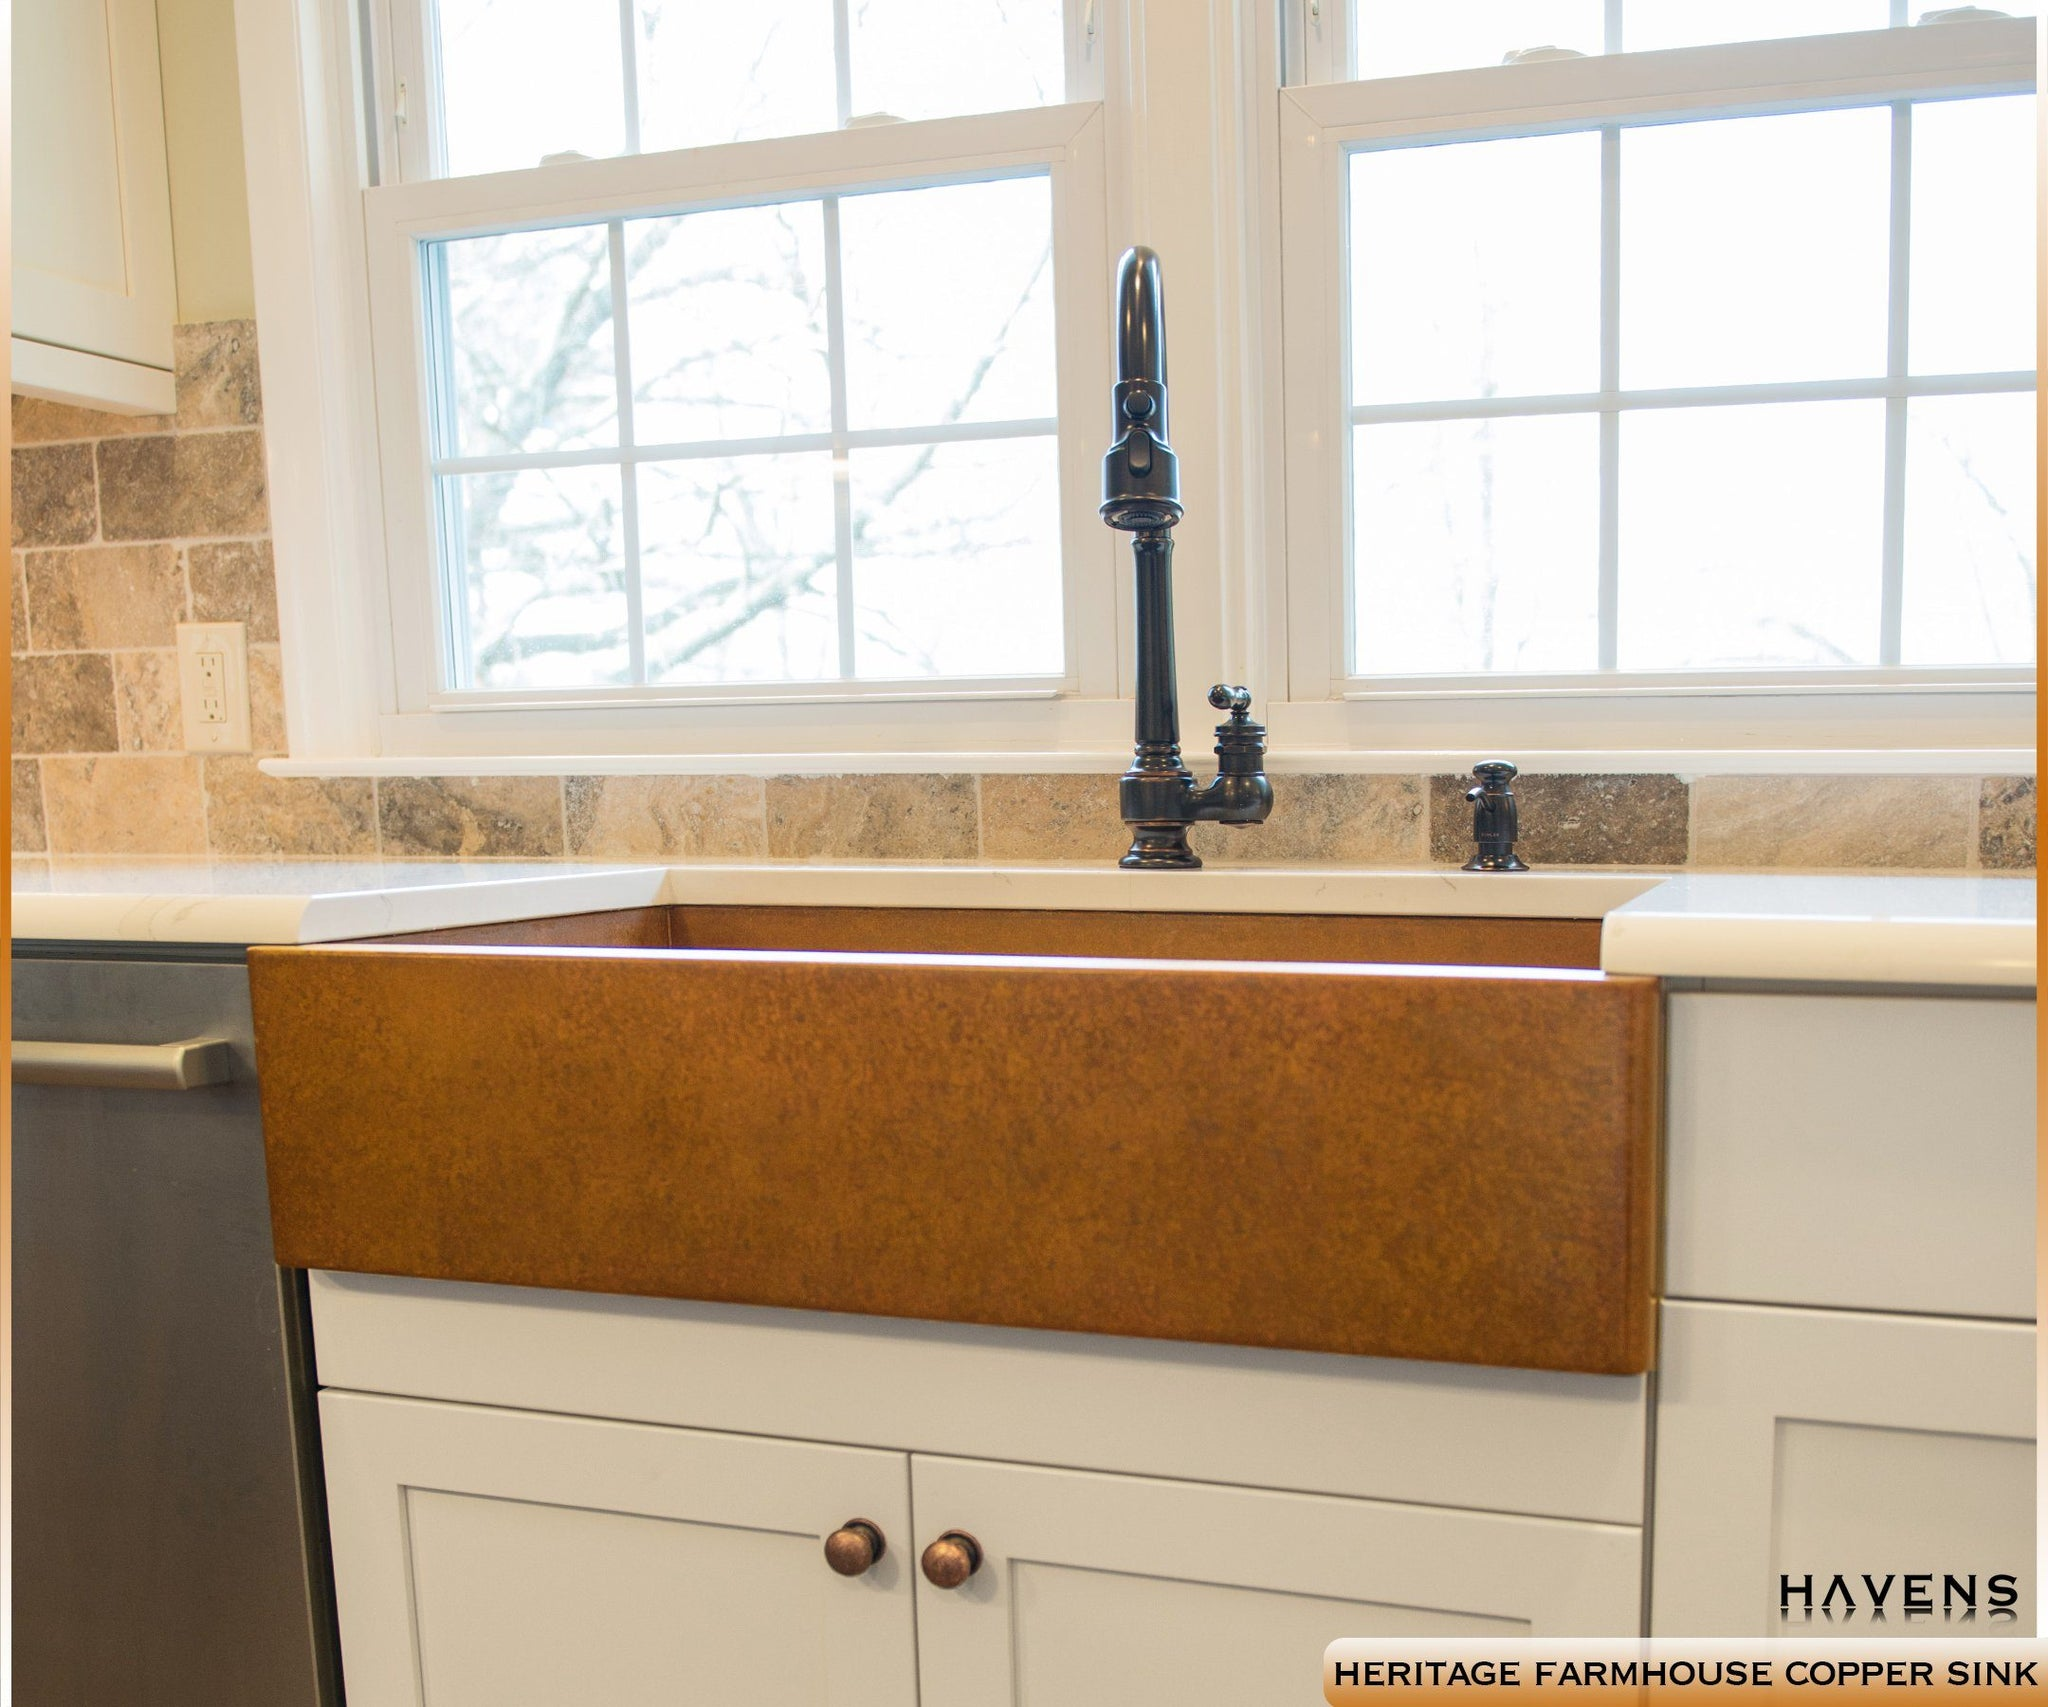 Farmhouse apron copper kitchen sink, made in the USA from 14 gauge.